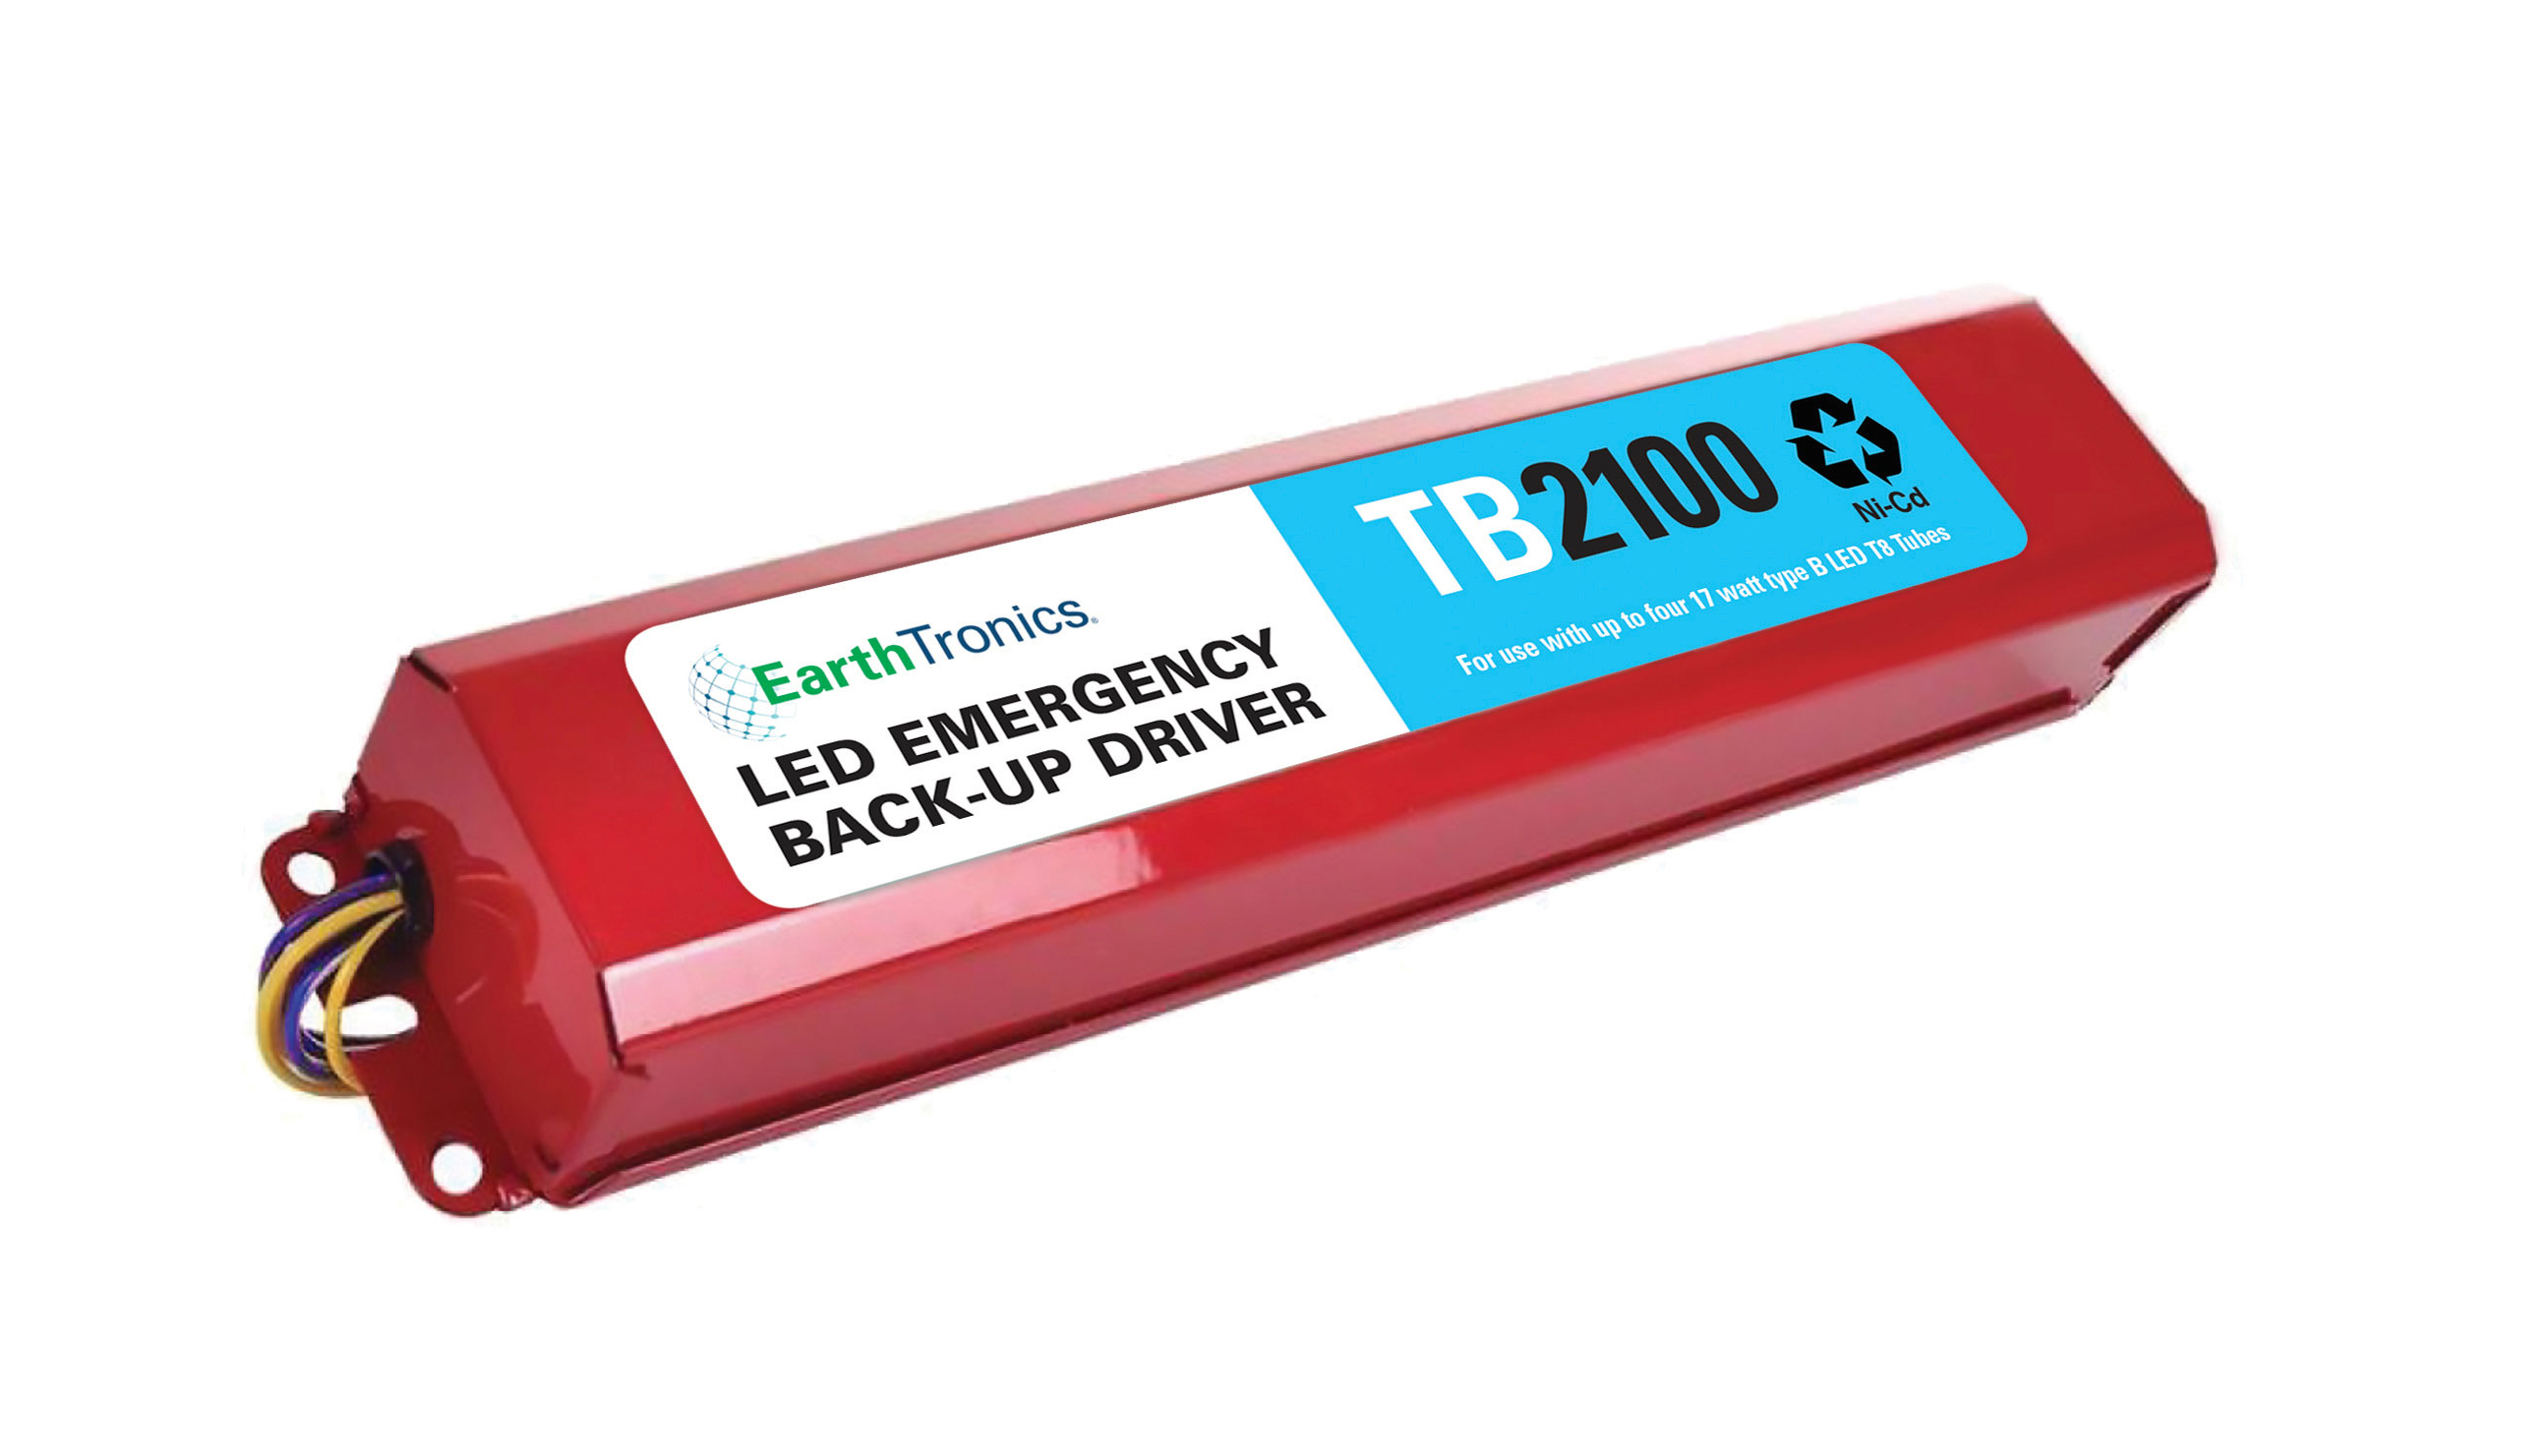 Earthtronics' LED Emergency Driver